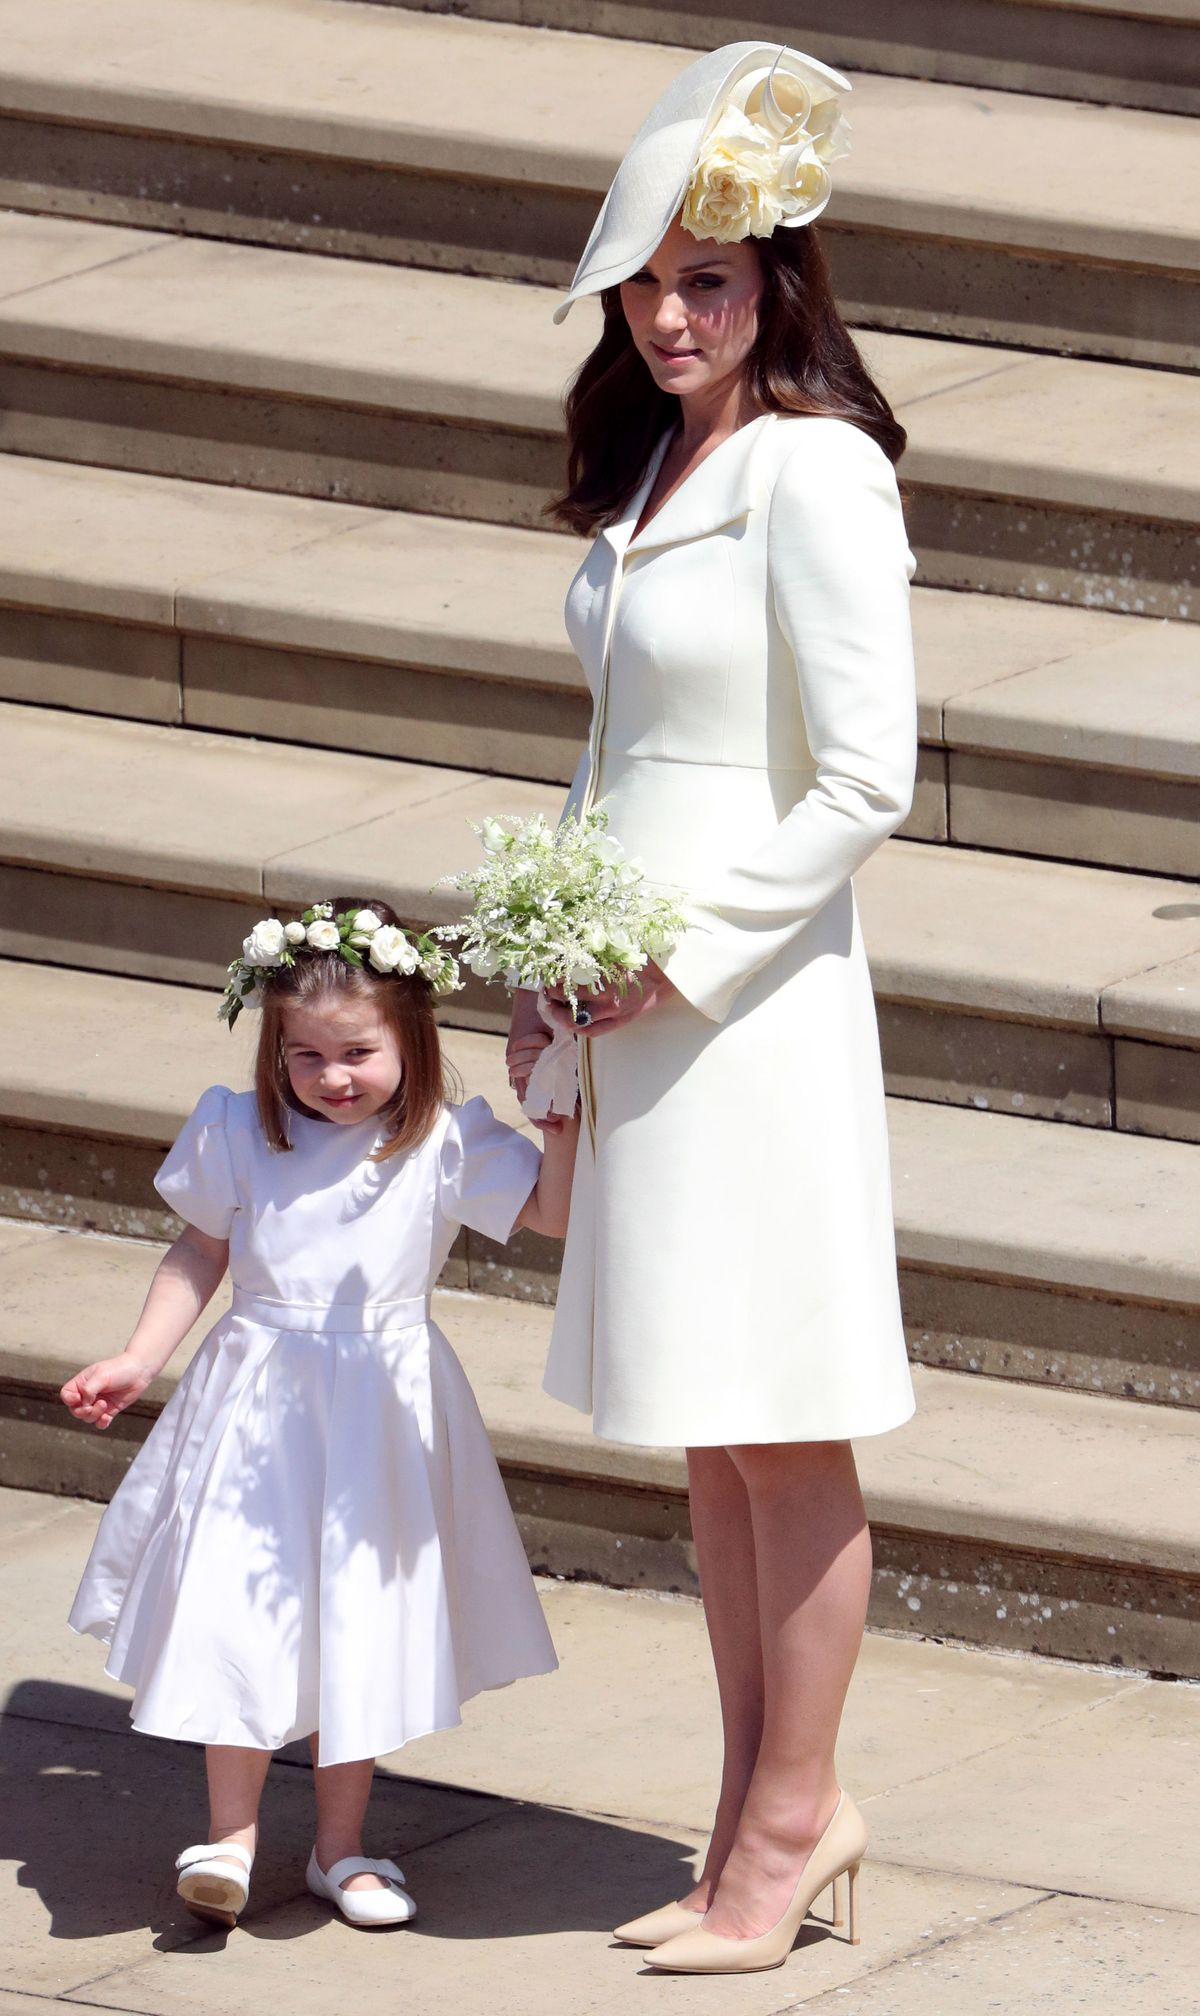 Kate Middleton and daughter, Princess Charlotte, at the wedding of Prince Harry and Meghan Markle.